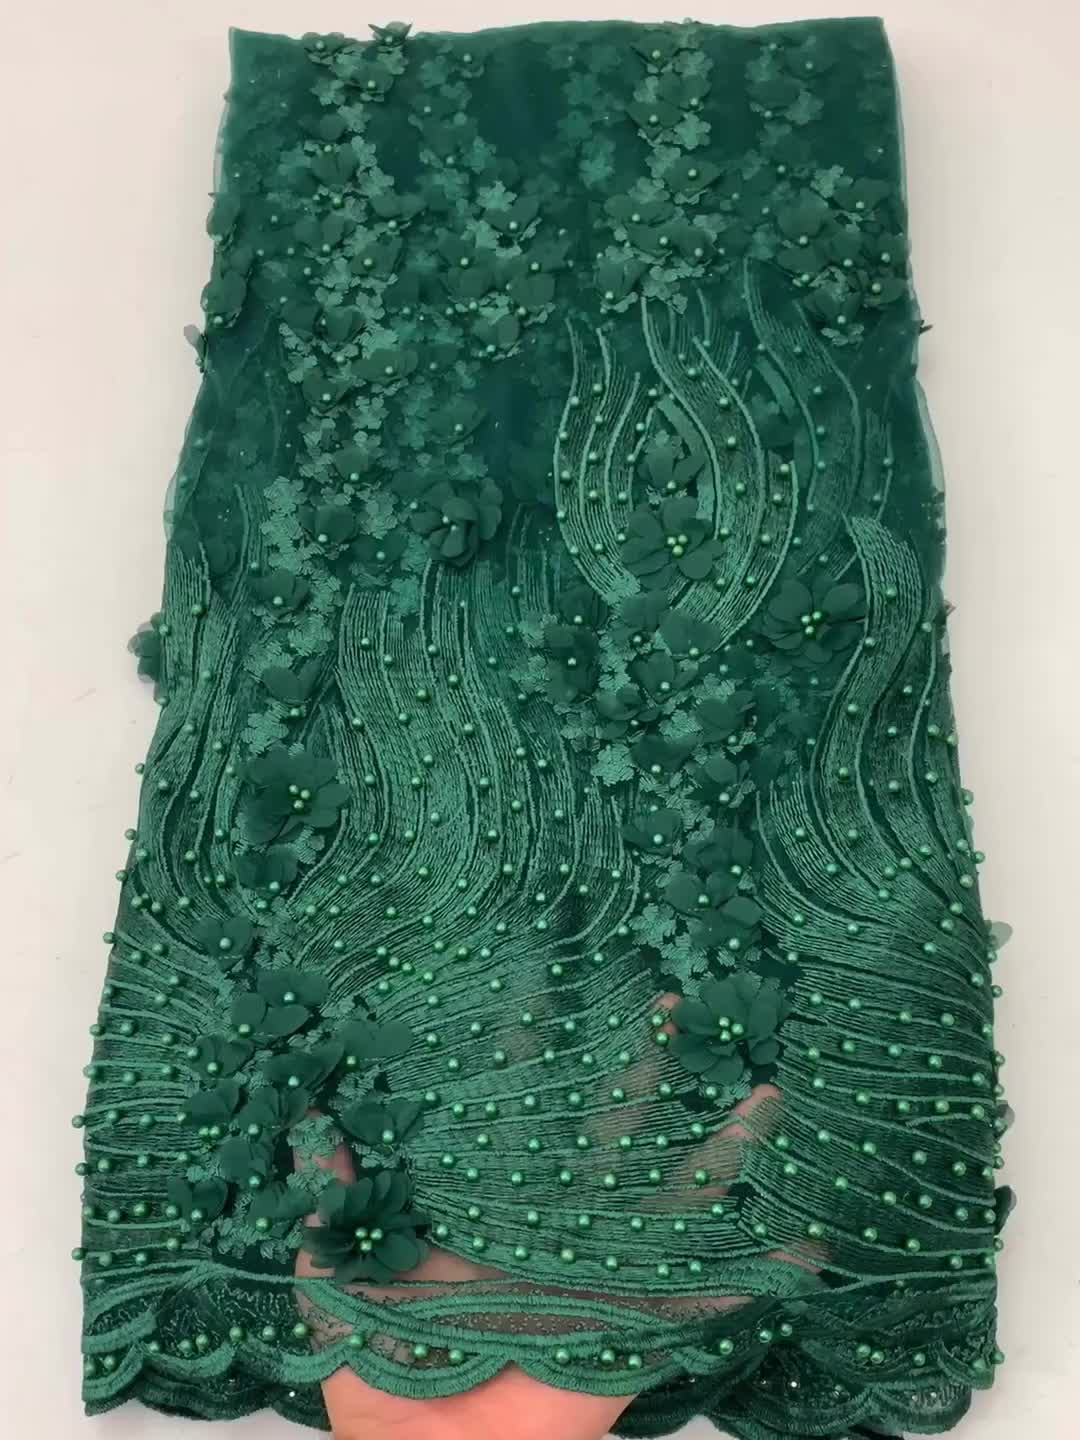 African Lace Fabric 2020 Embroidered Nigerian 3D Flowers Laces Fabric French Tulle Lace Fabric for Bridal Wedding Dress XZ2817B